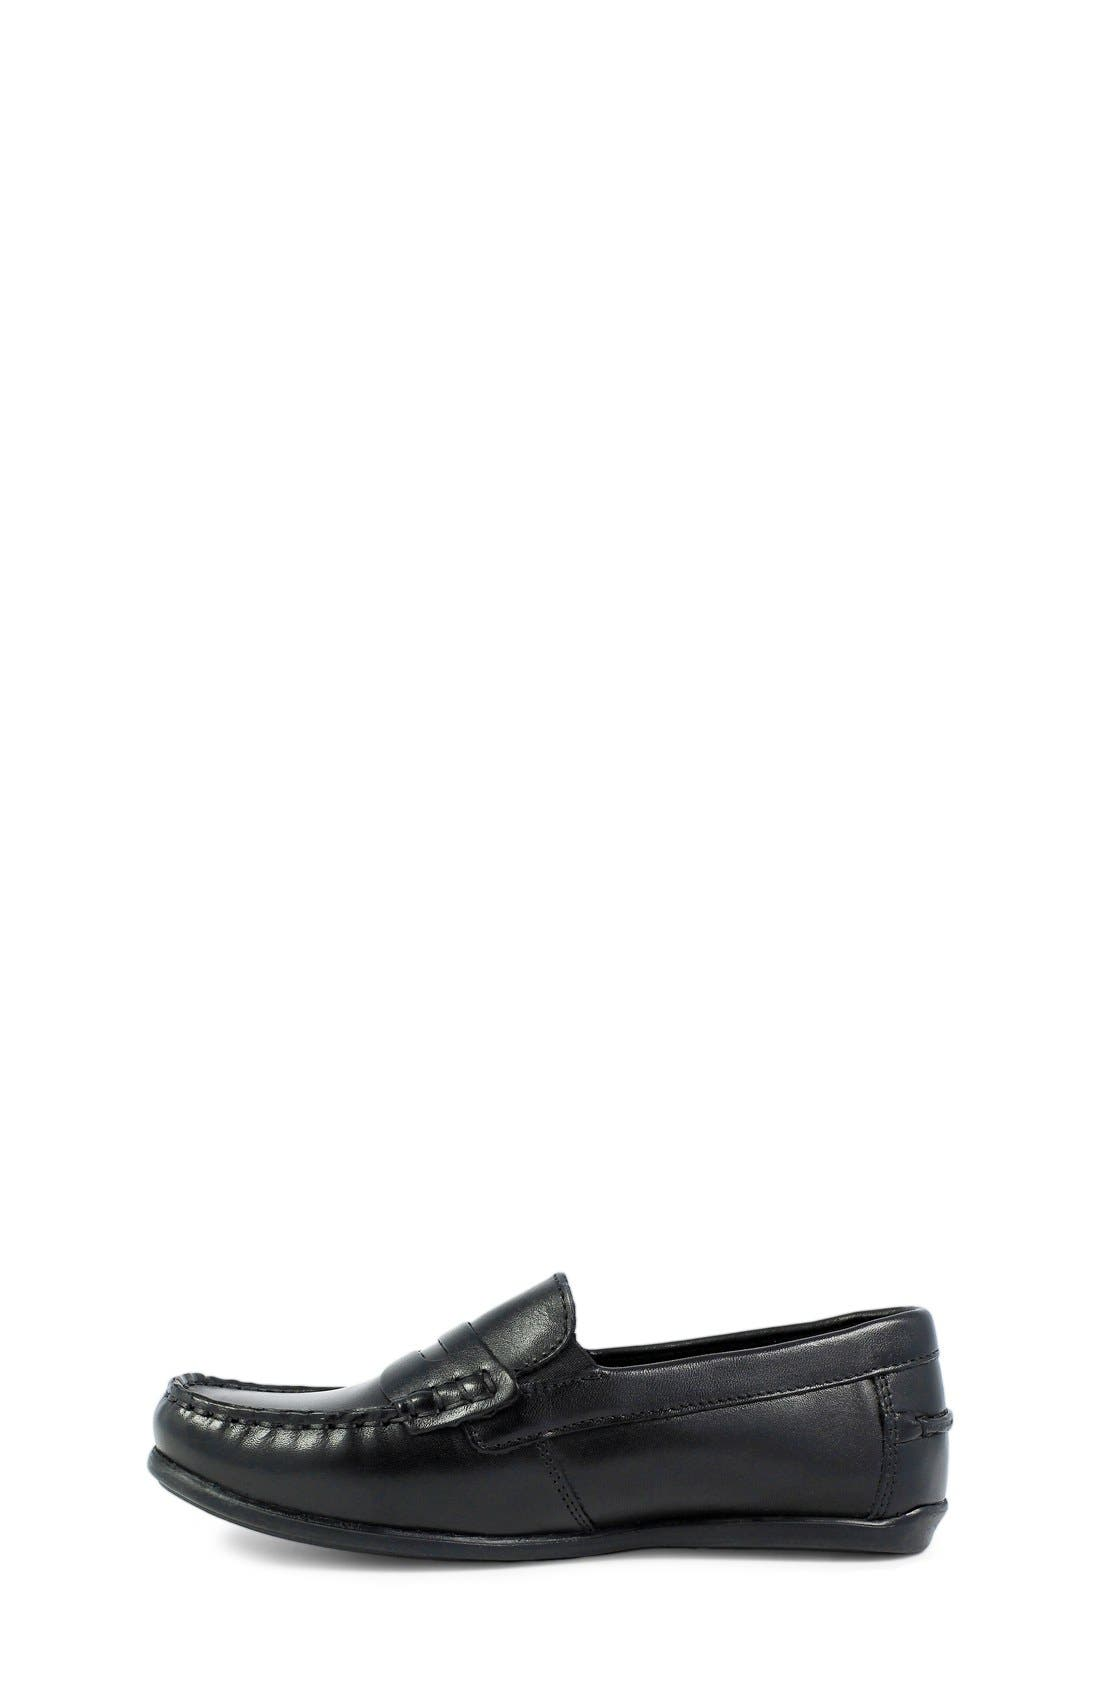 'Jasper - Driver Jr.' Loafer,                             Alternate thumbnail 2, color,                             BLACK LEATHER